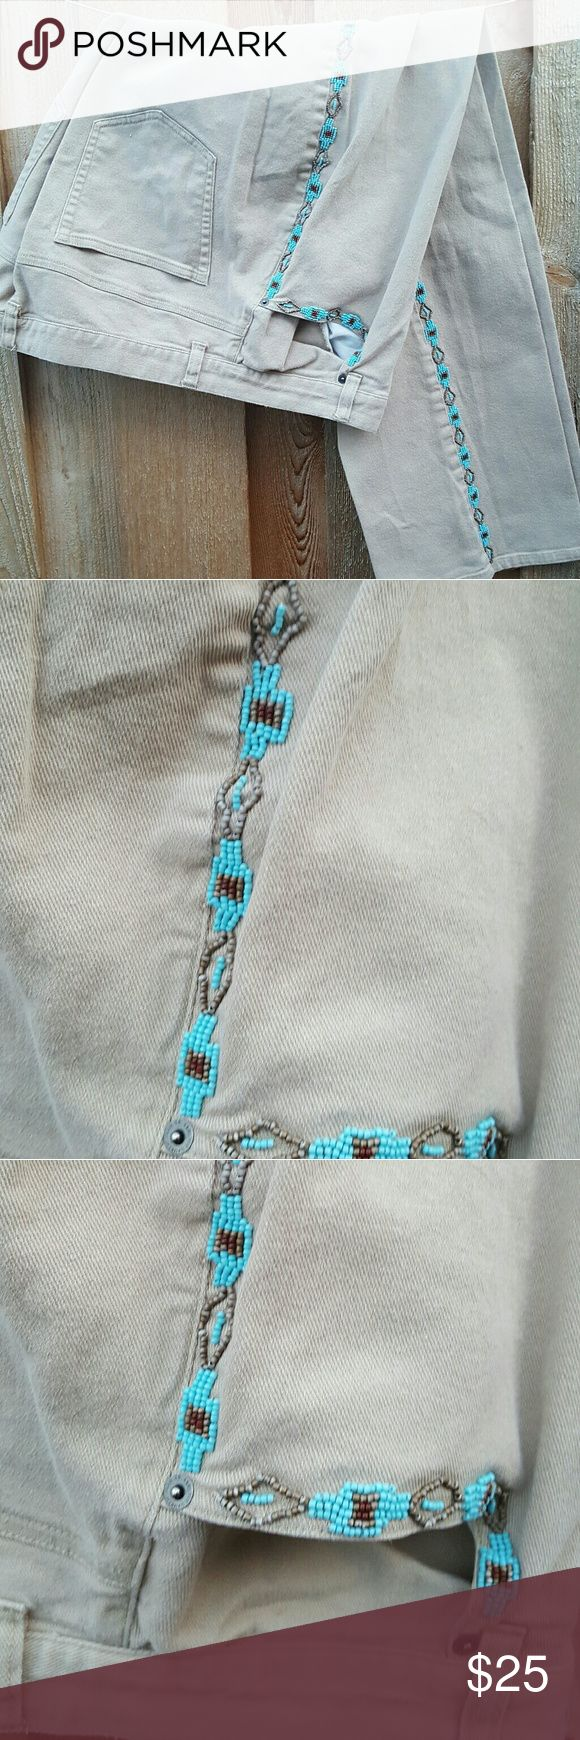 """Ralph  Lauren  beaded cream  jeans size 16W GC Ralph Lauren turquoise  beaded jeans dress  with turquoise jewelry for southwest flair or turquoise sweater or blouse for a casual style inseam 30"""" waist 18.5"""" bottom leg width 10"""" Ralph Lauren Jeans Boot Cut"""